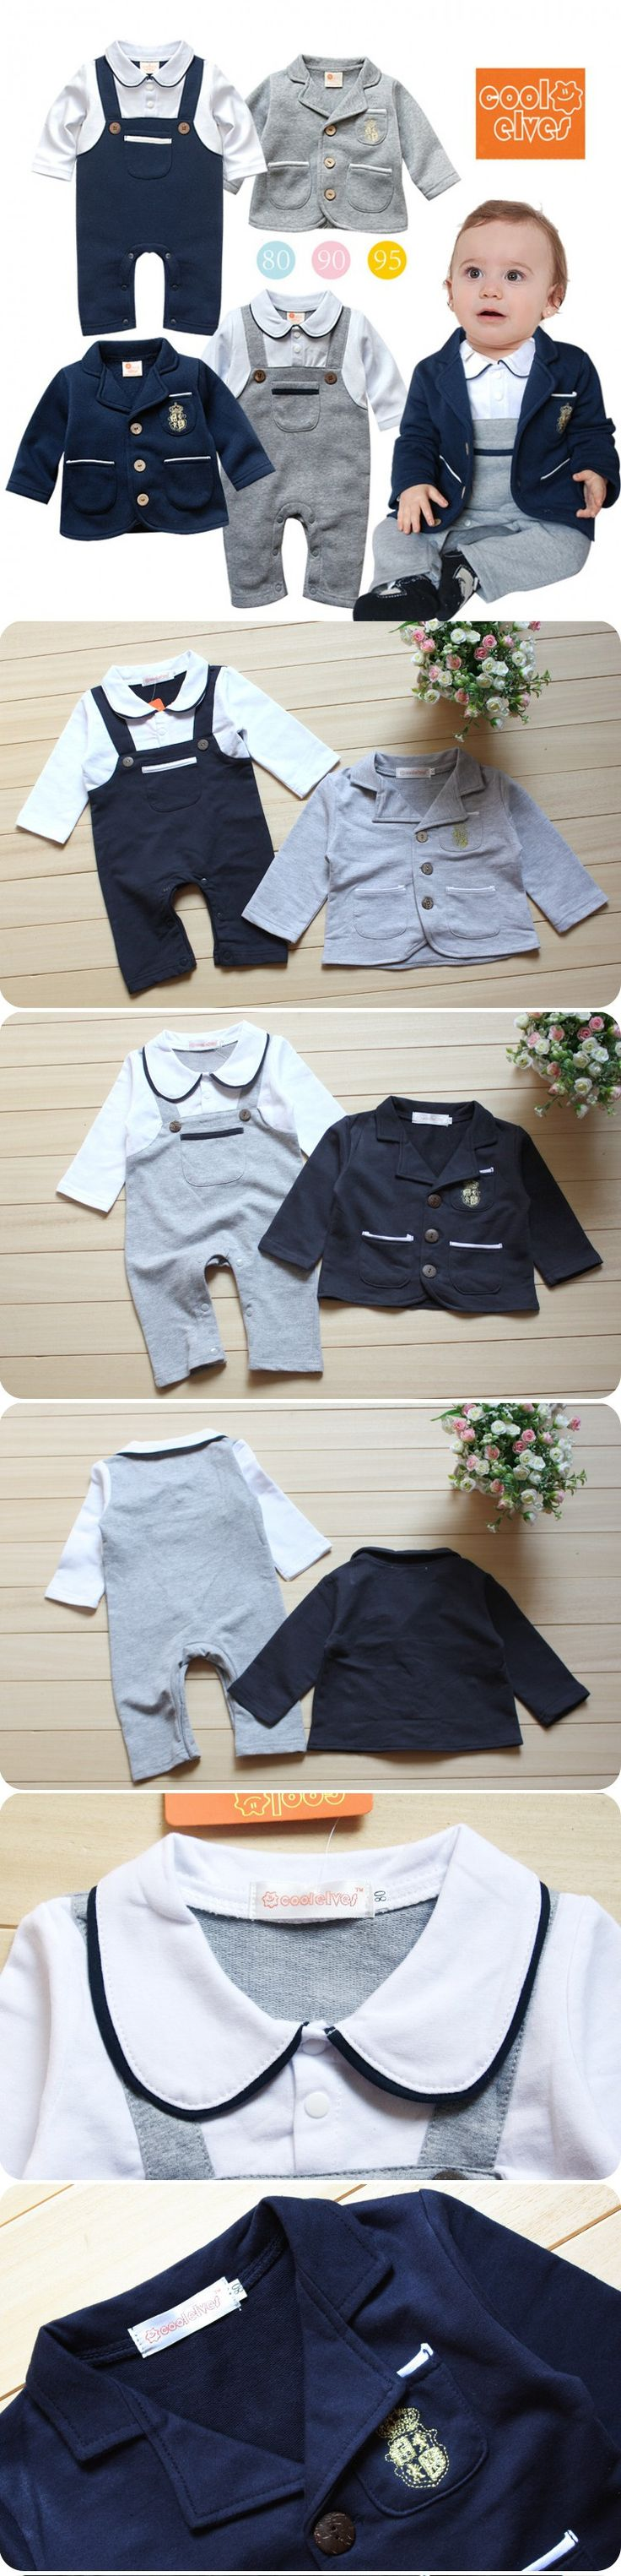 Baby Boys Clothing Set Spring Autumn Baby Romper + Jacket Coat 2pcs Suit Infant Boys Clothes Newborn Toddler Baby Boys Outfit